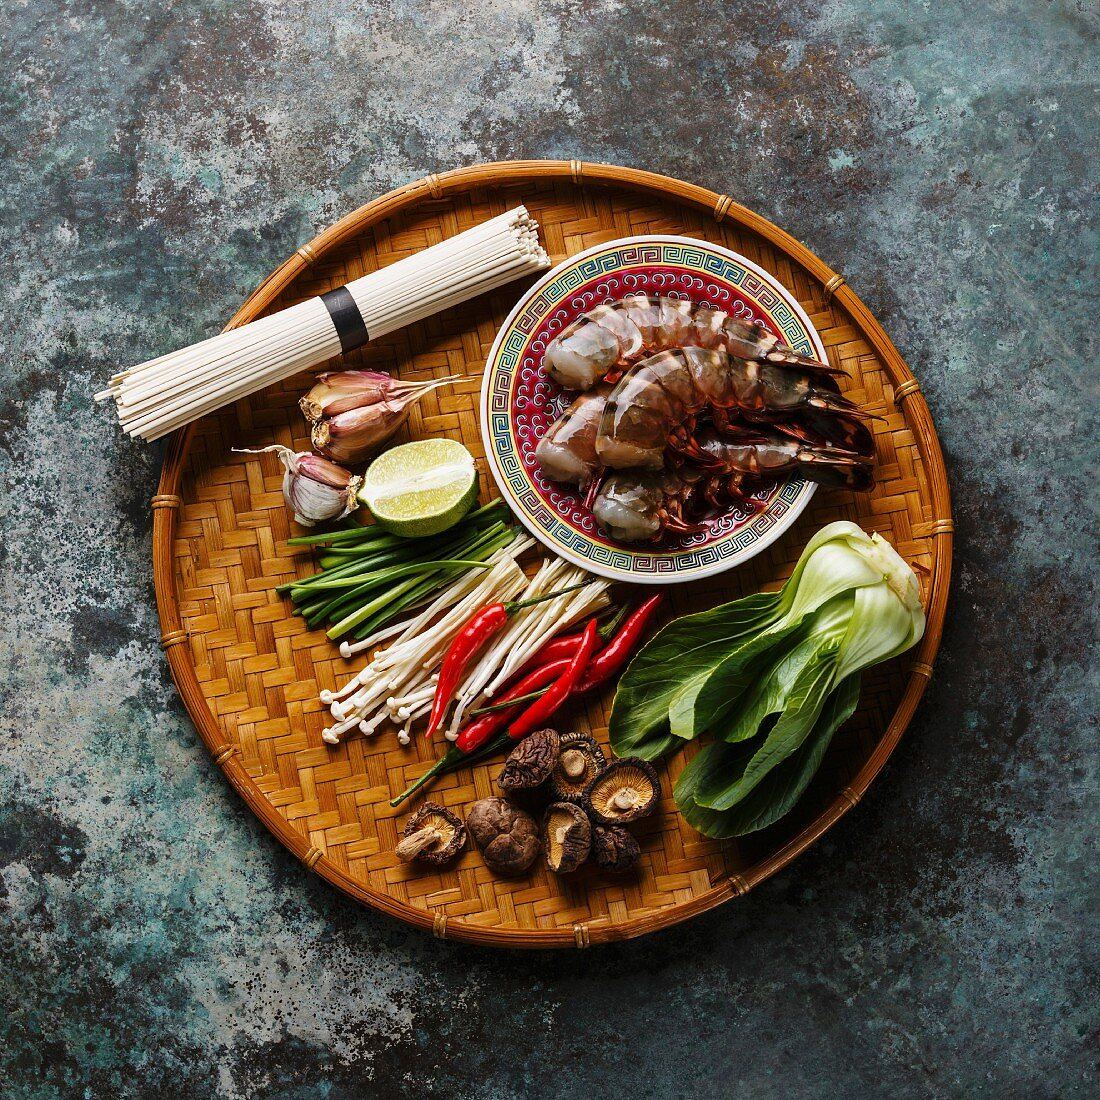 Ingredients for cooking Asian food with Tiger shrimps, udon noodles, mushrooms, greens, vegetables, spices on bamboo tray